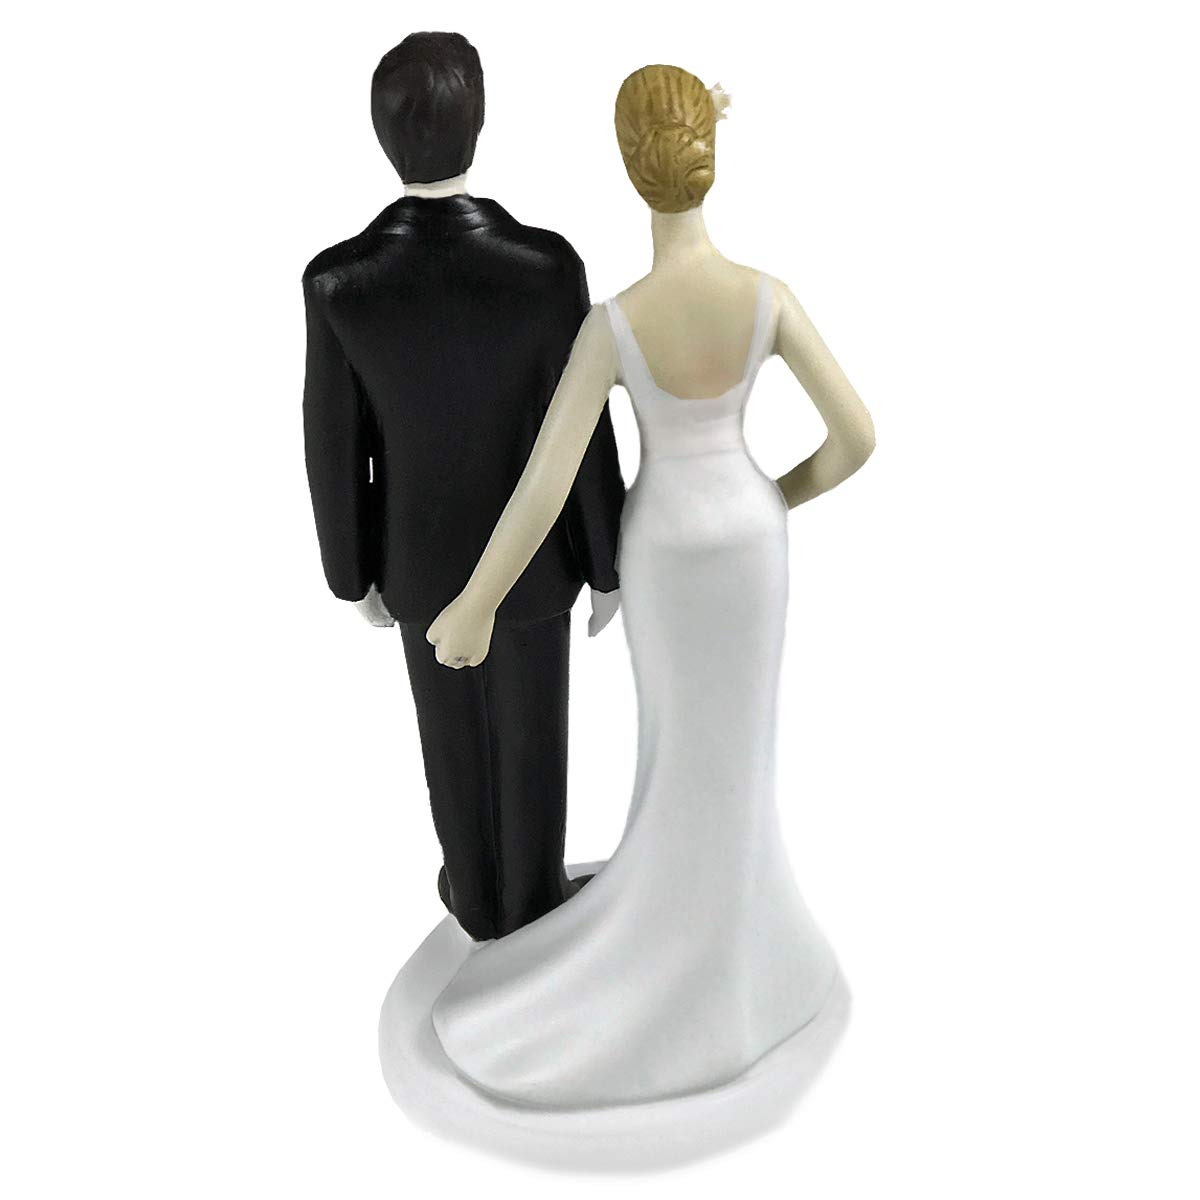 Loving Pinch Bridal Couple Figurine Wedding Cake Topper All Things Weddings